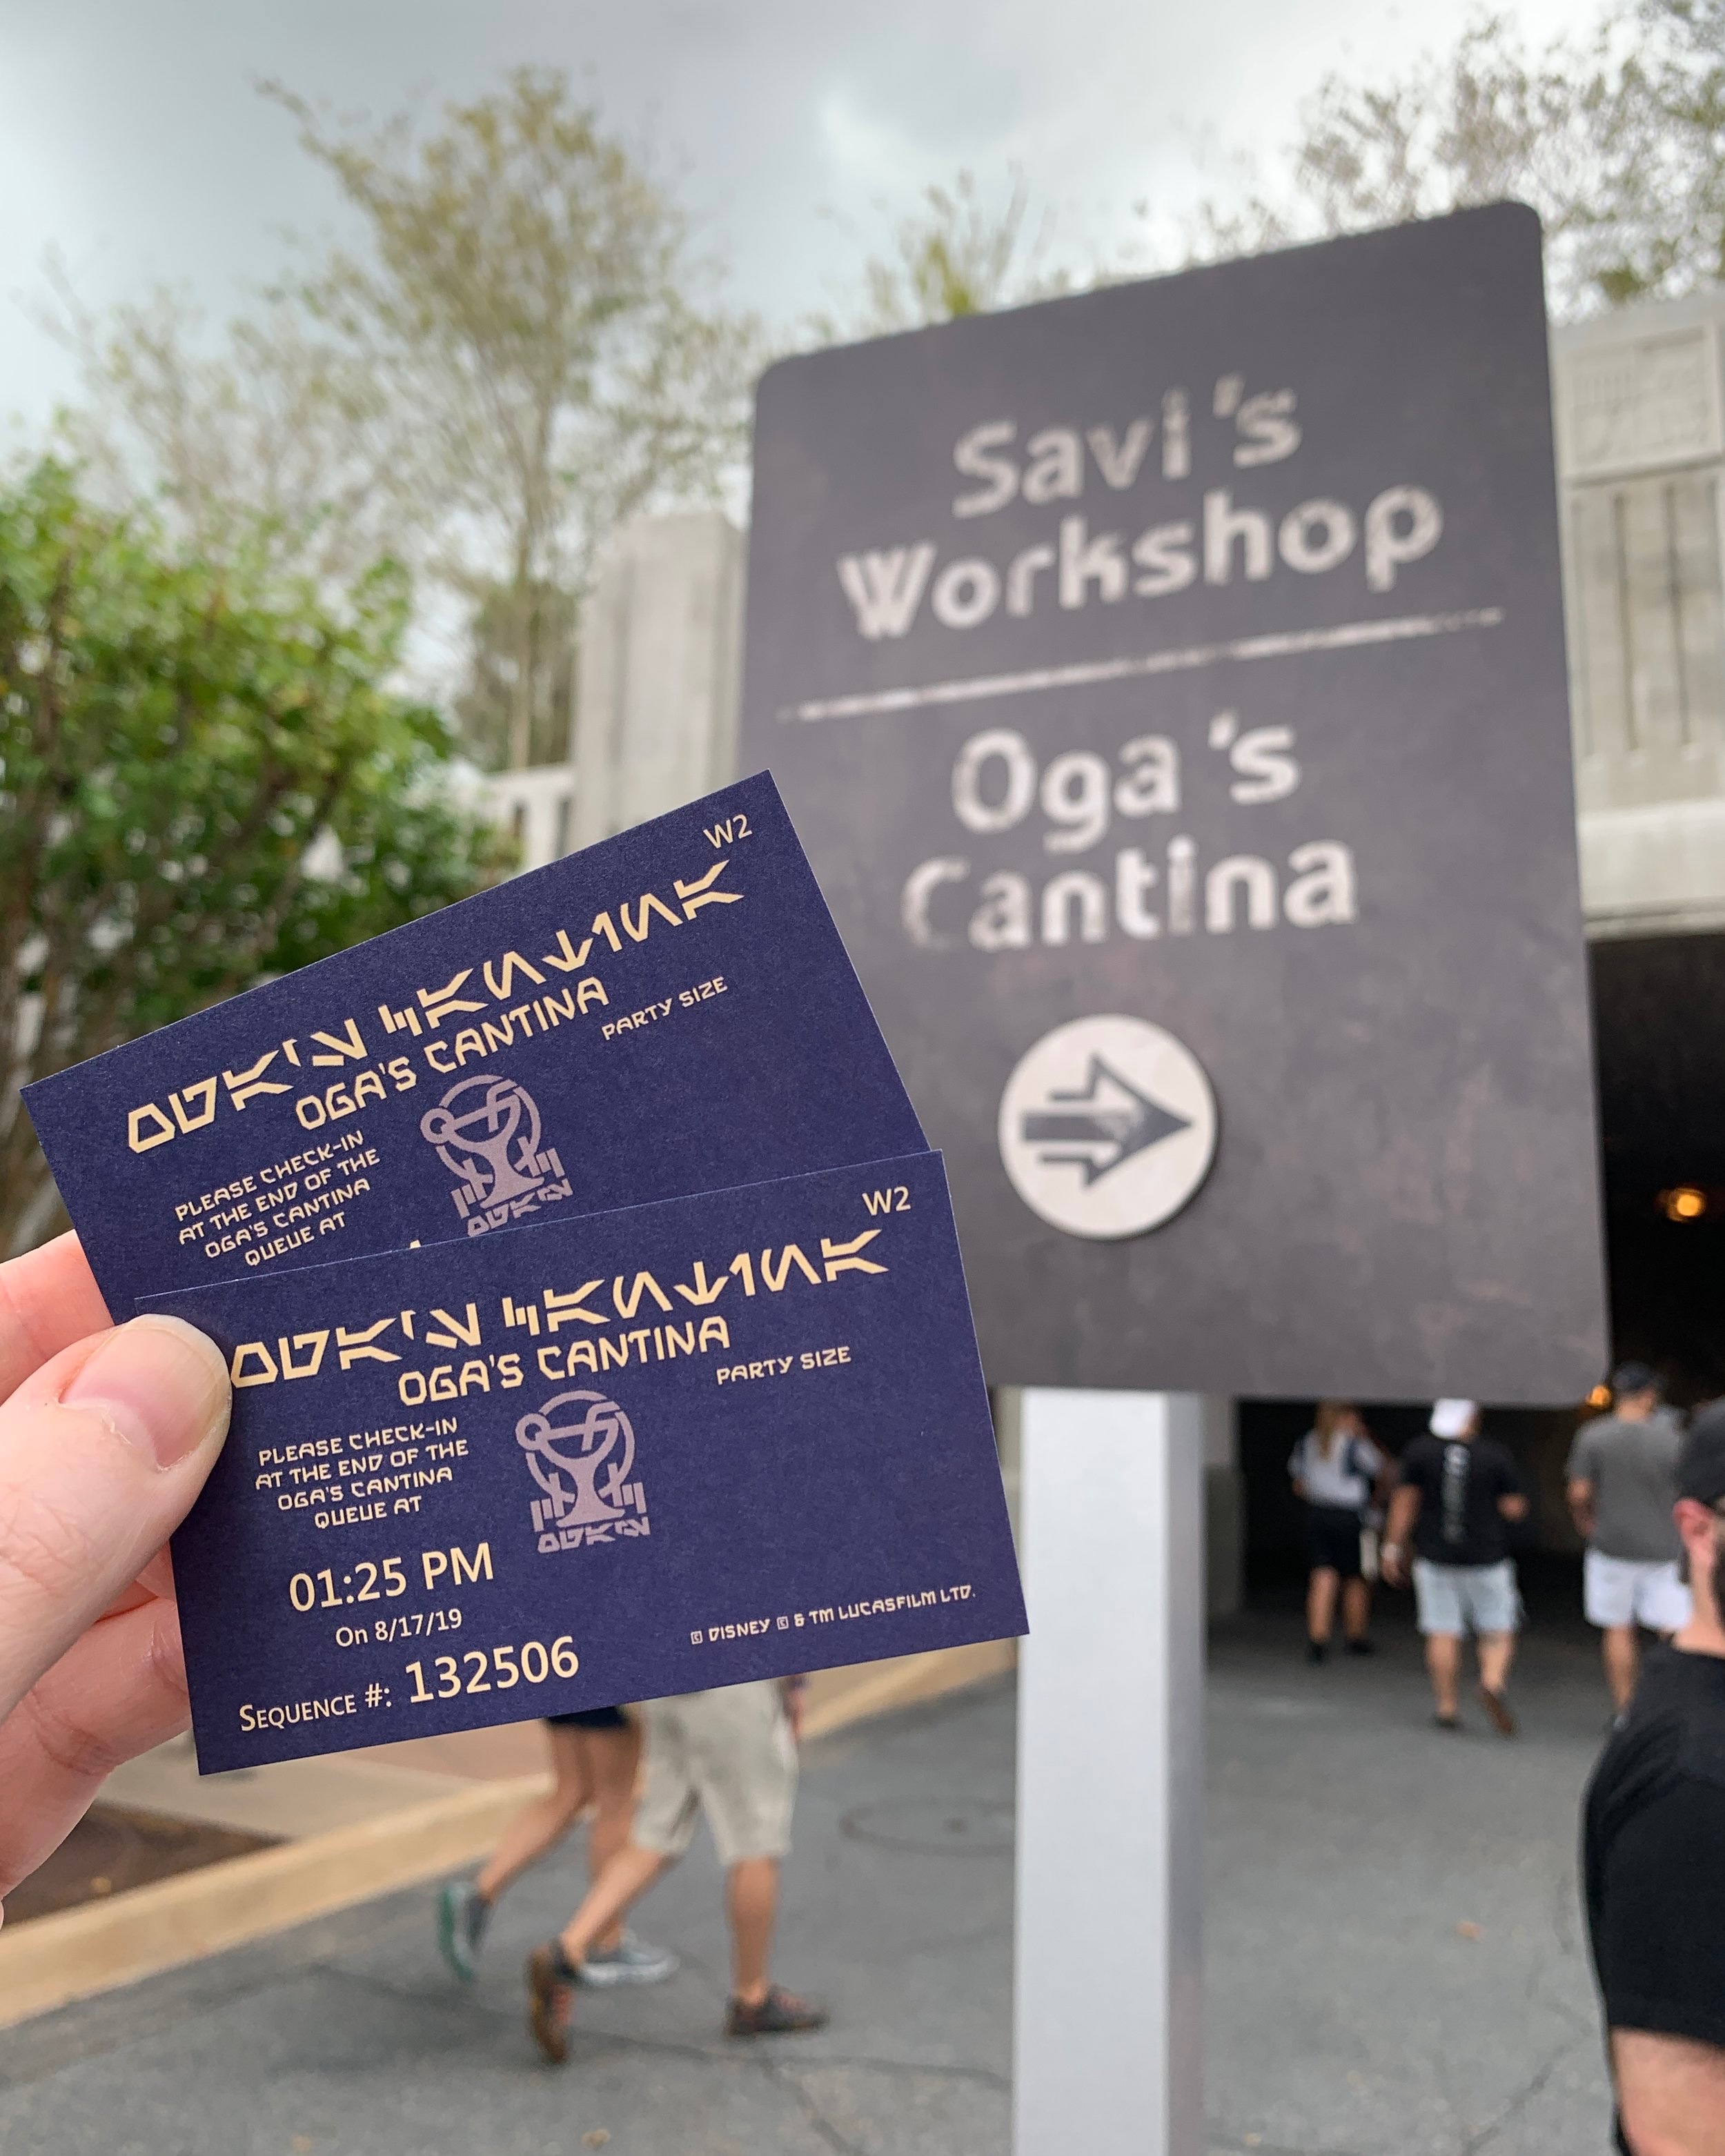 We checked-in to receive a reservation time for Oga's Cantina